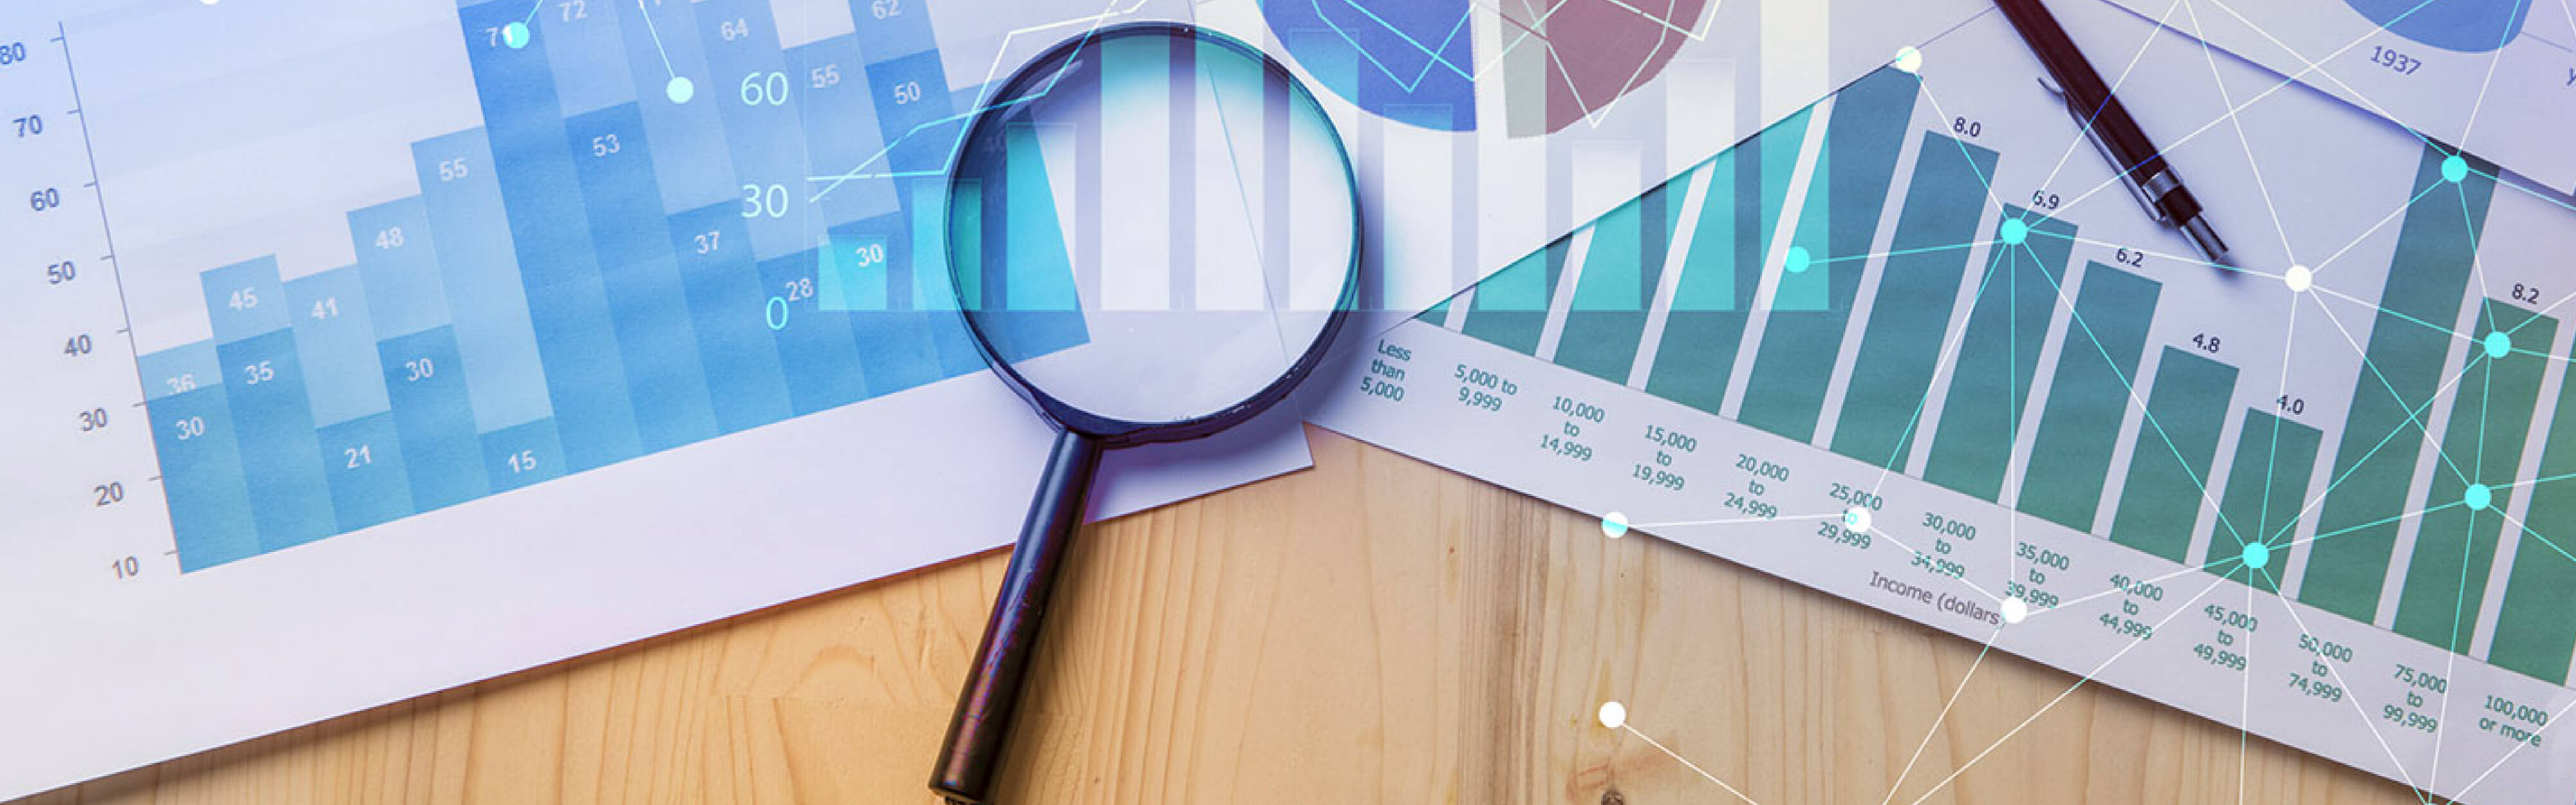 Clinical Research Organization (CRO) Services